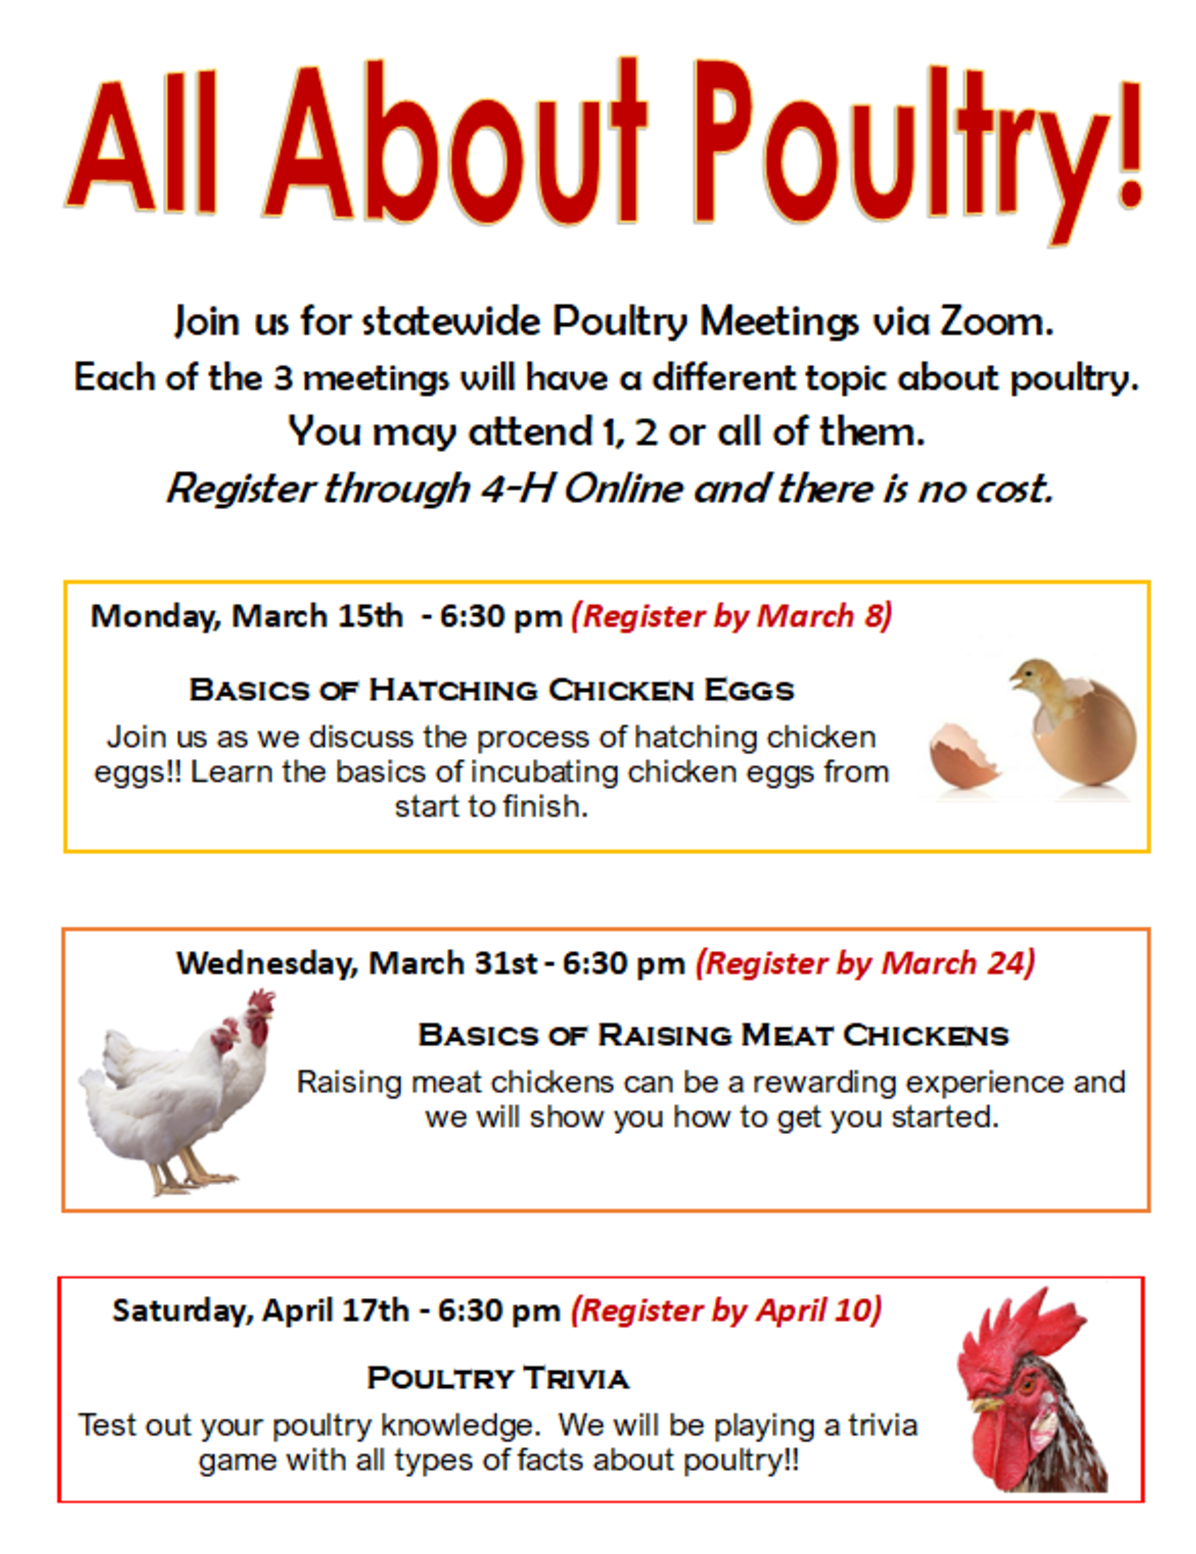 All About Poultry